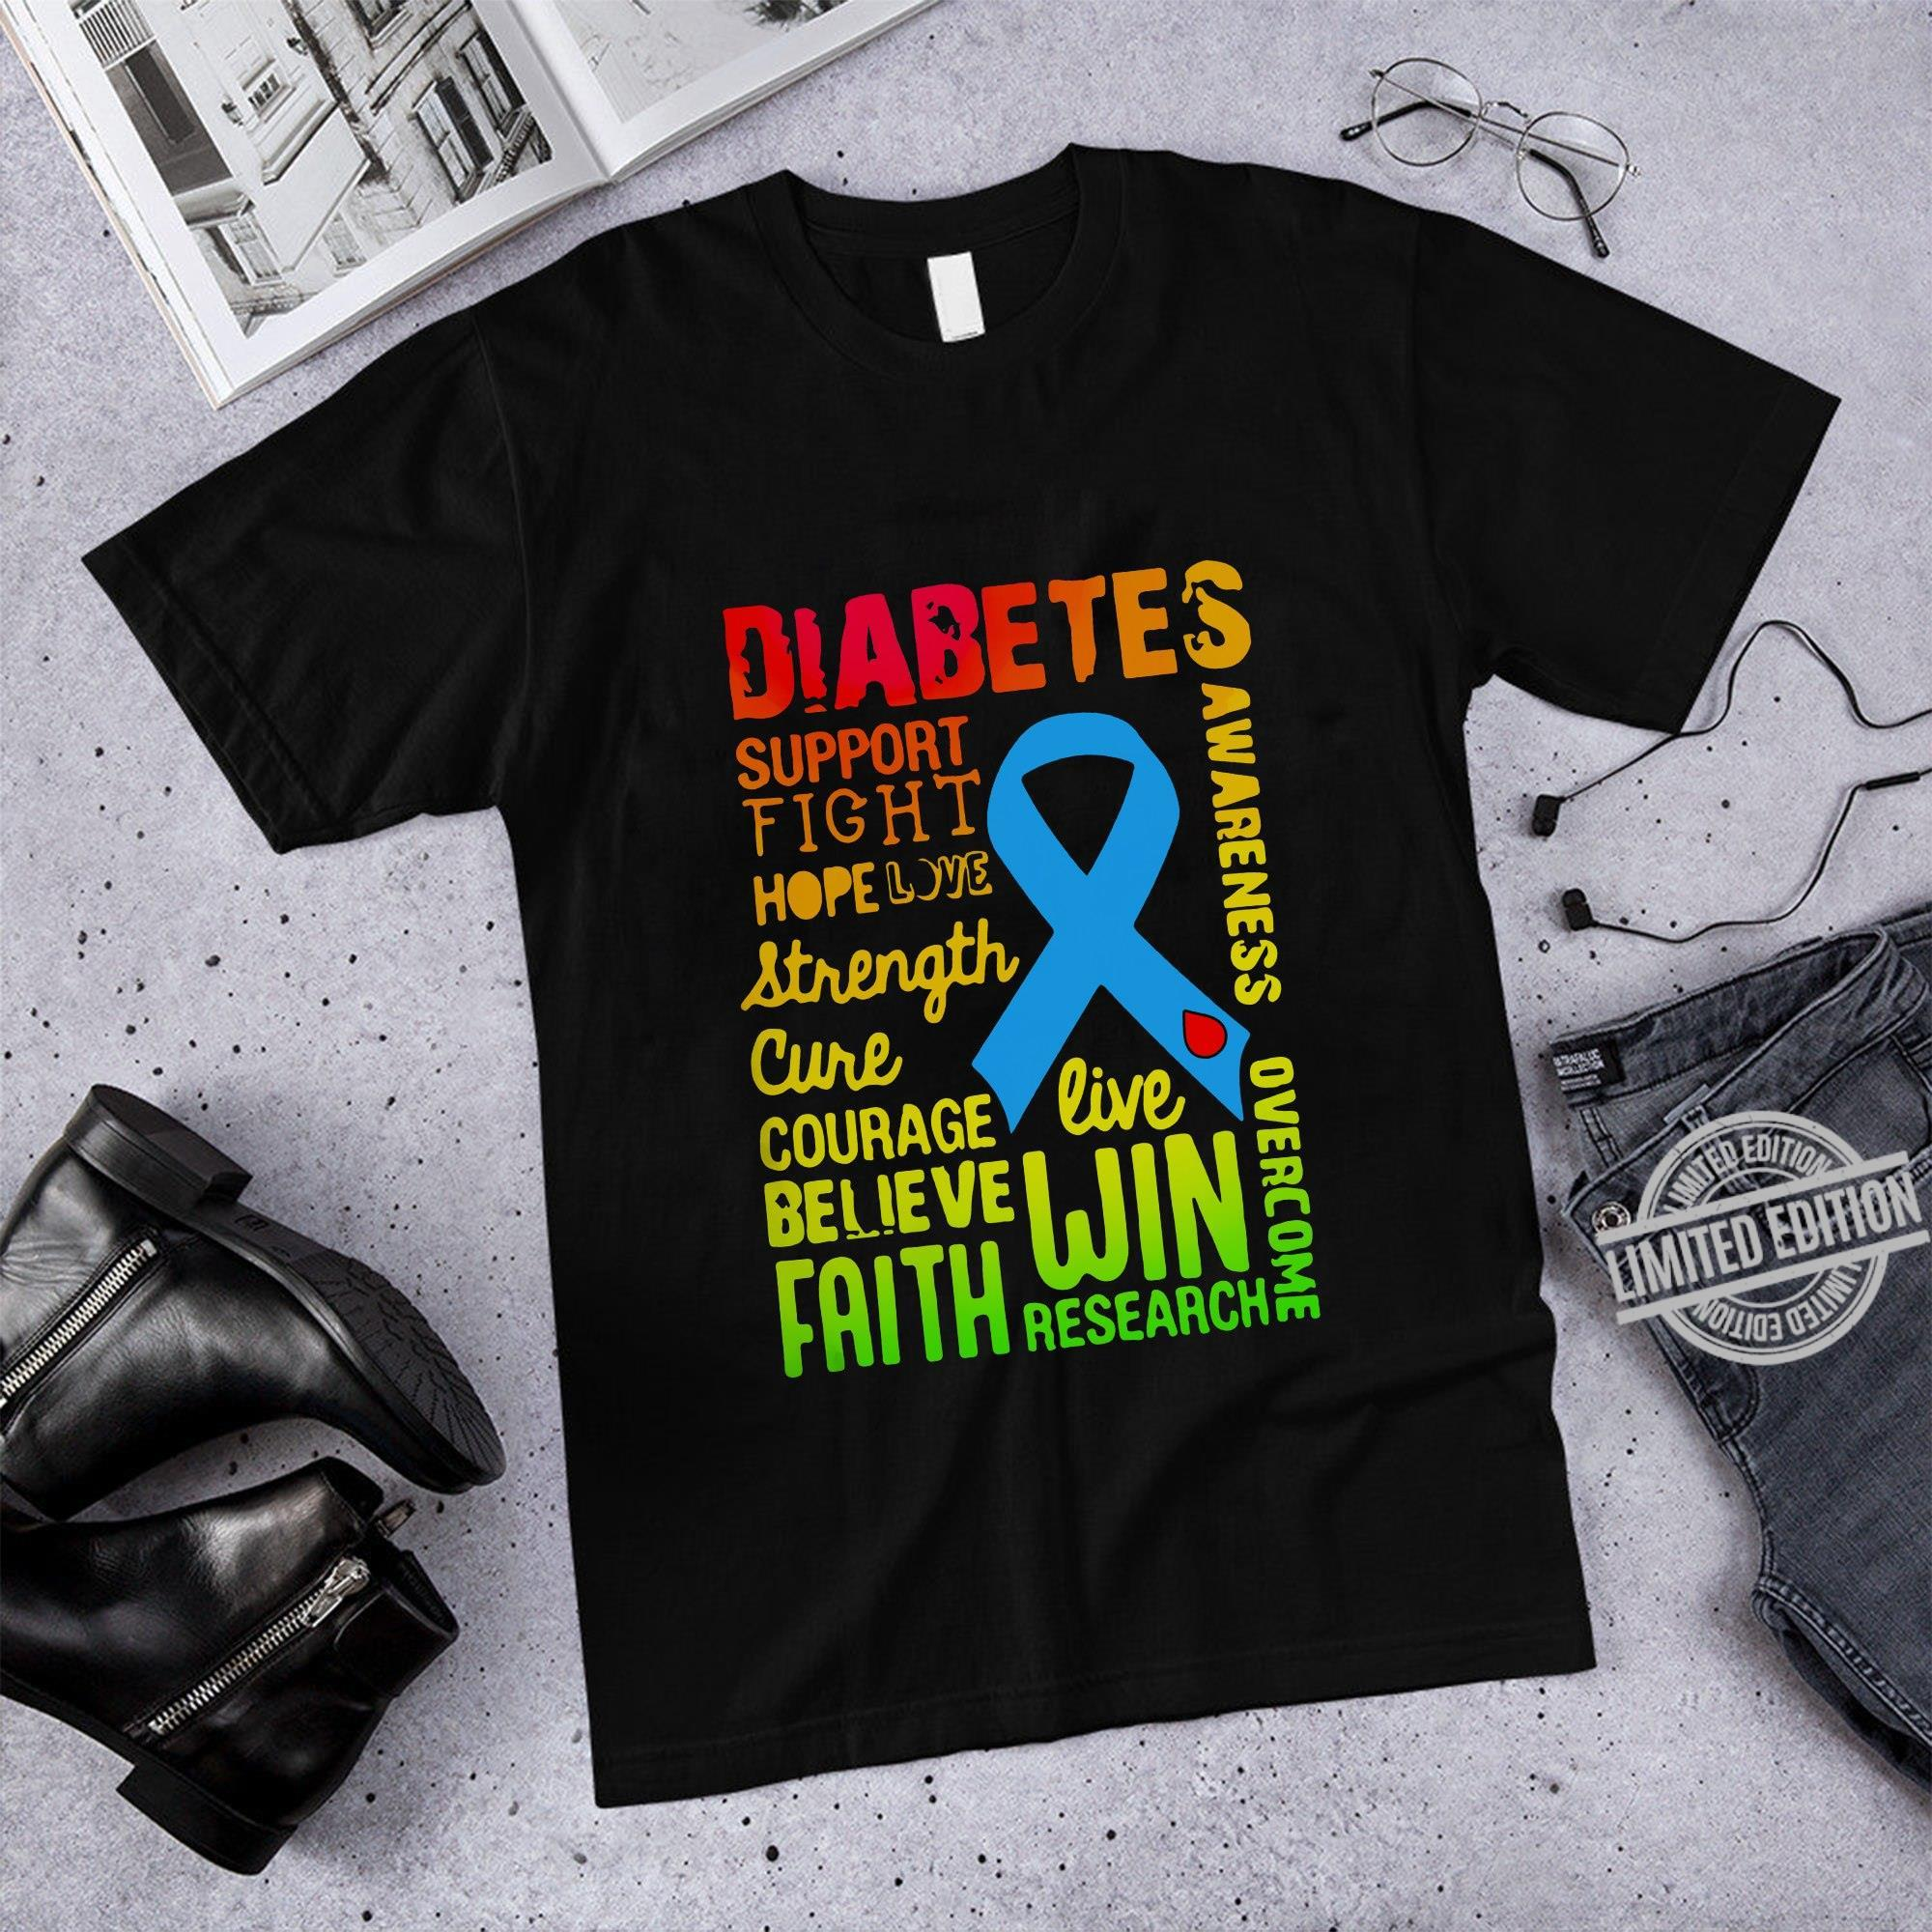 Diabetes Support Fight Hope Love Strength Cure Couorage Believe Faith Live Win Research Awareness Overcome Shirt